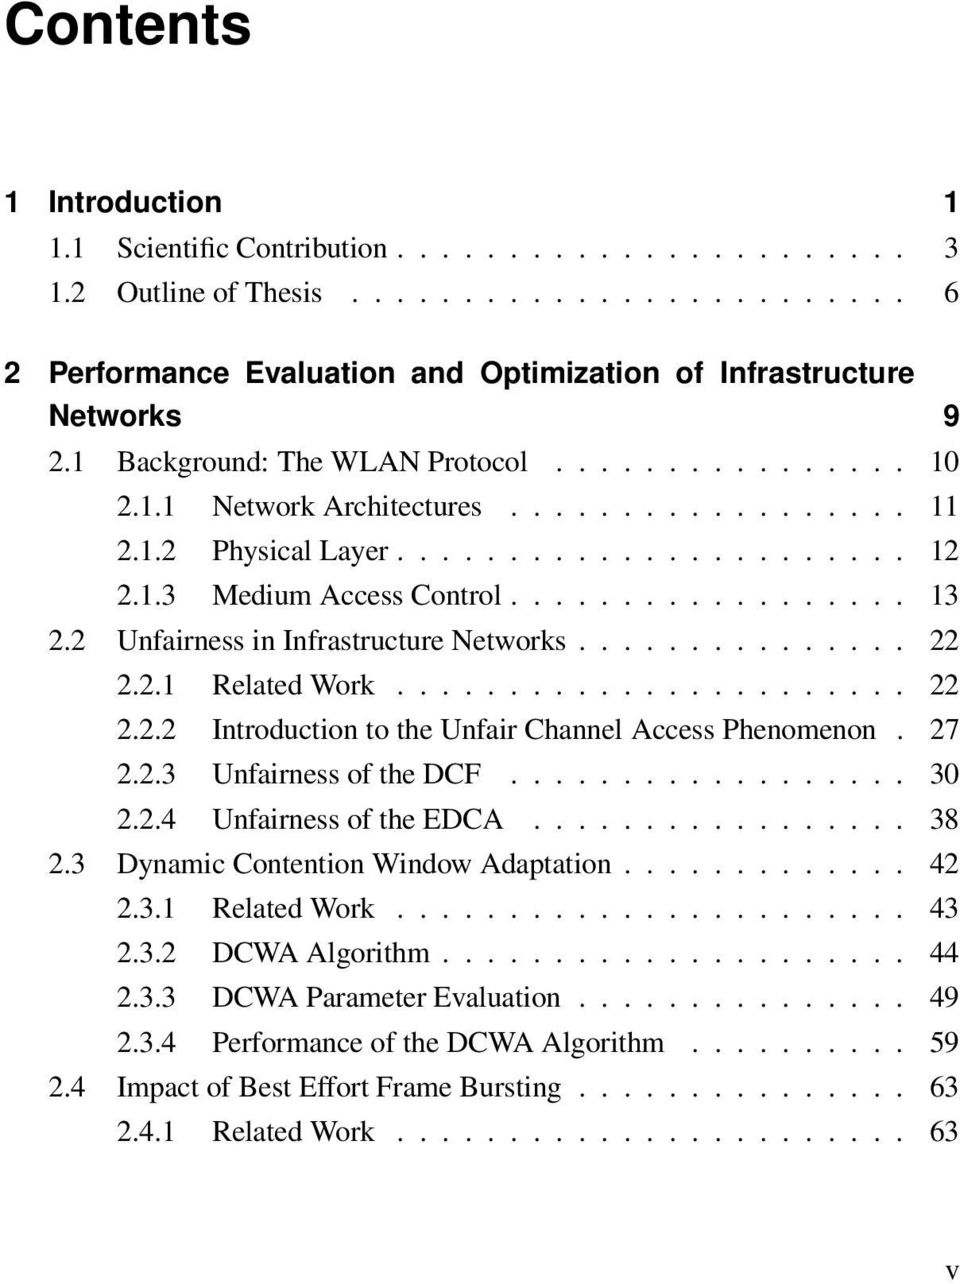 2 Unfairness in Infrastructure Networks............... 22 2.2.1 Related Work....................... 22 2.2.2 Introduction to the Unfair Channel Access Phenomenon. 27 2.2.3 Unfairness of the DCF.................. 30 2.